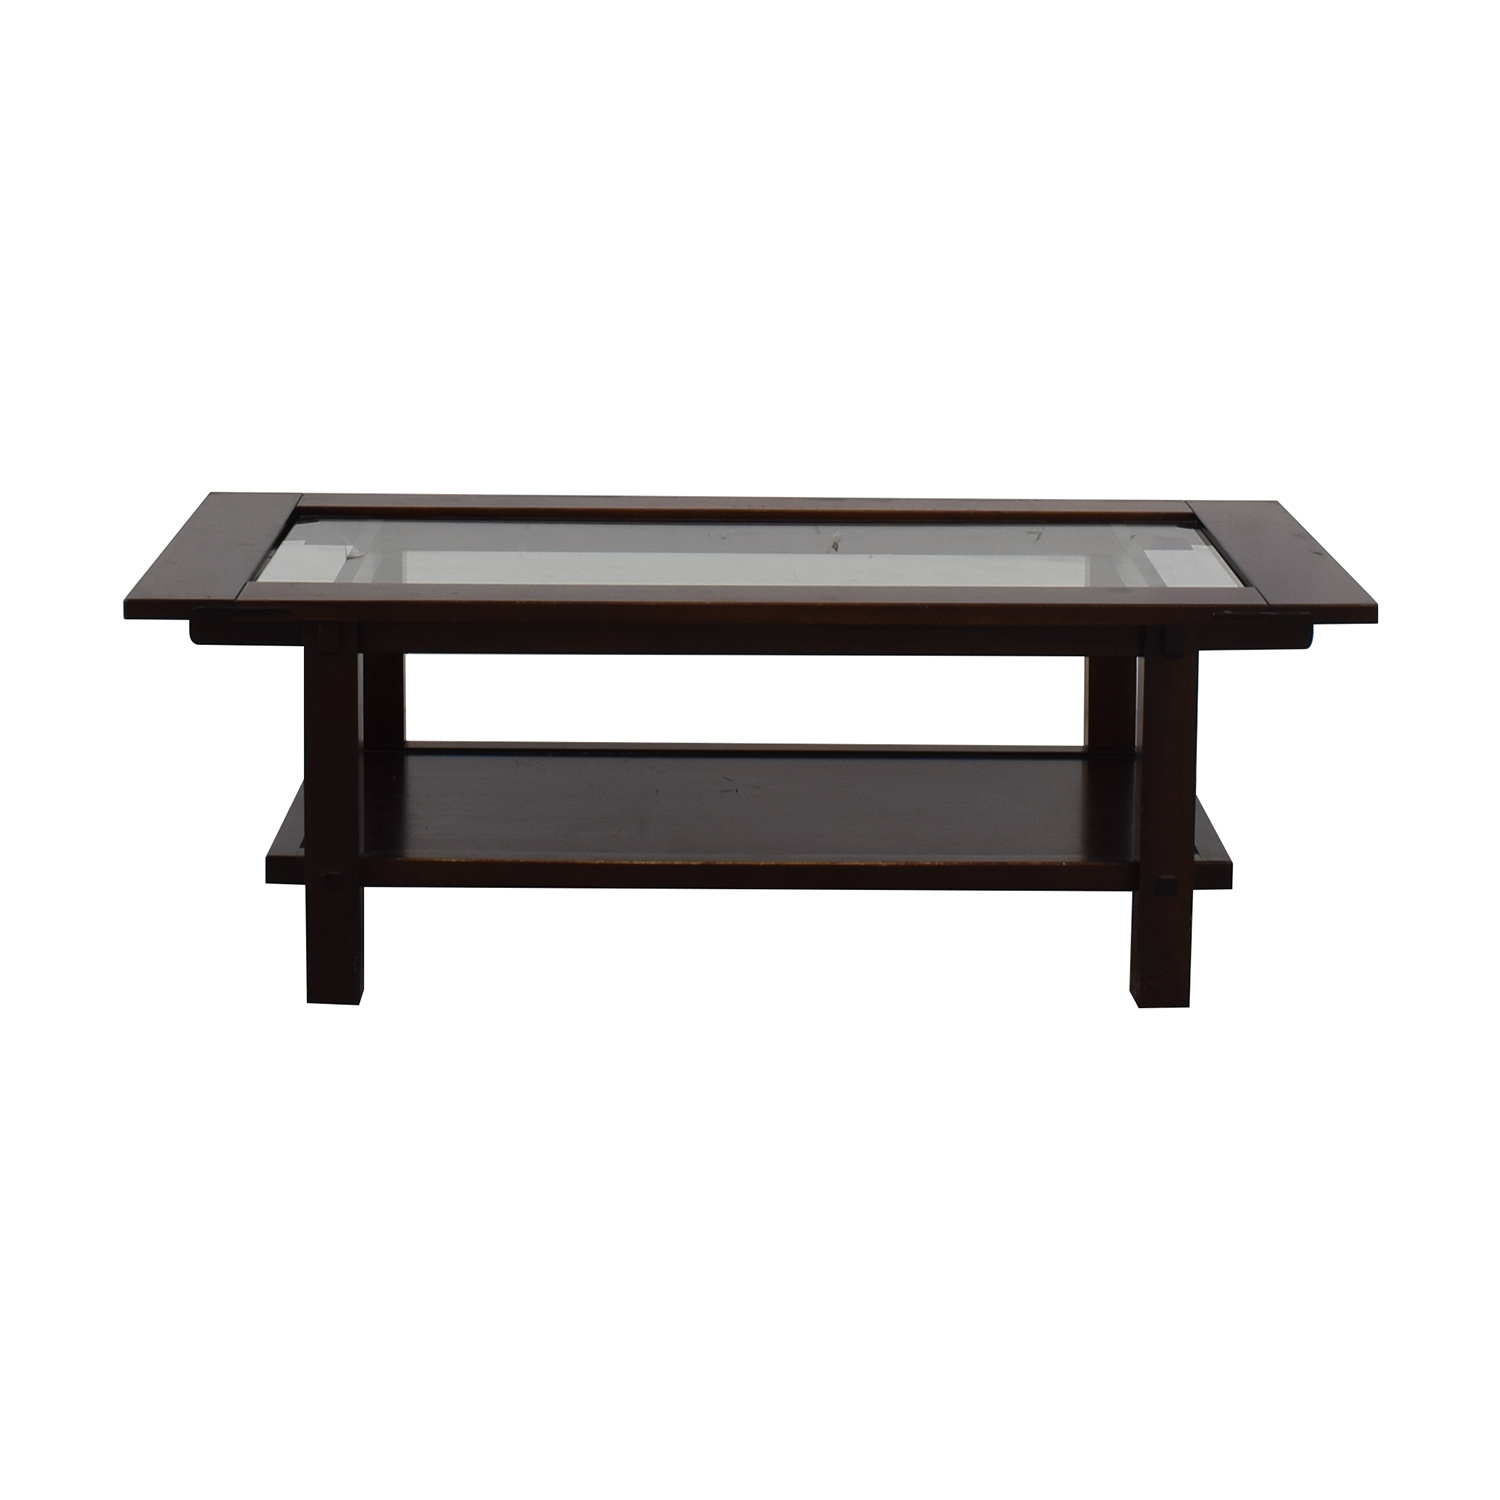 Crate & Barrel Crate & Barrel Brown Wooden Coffee Table for sale